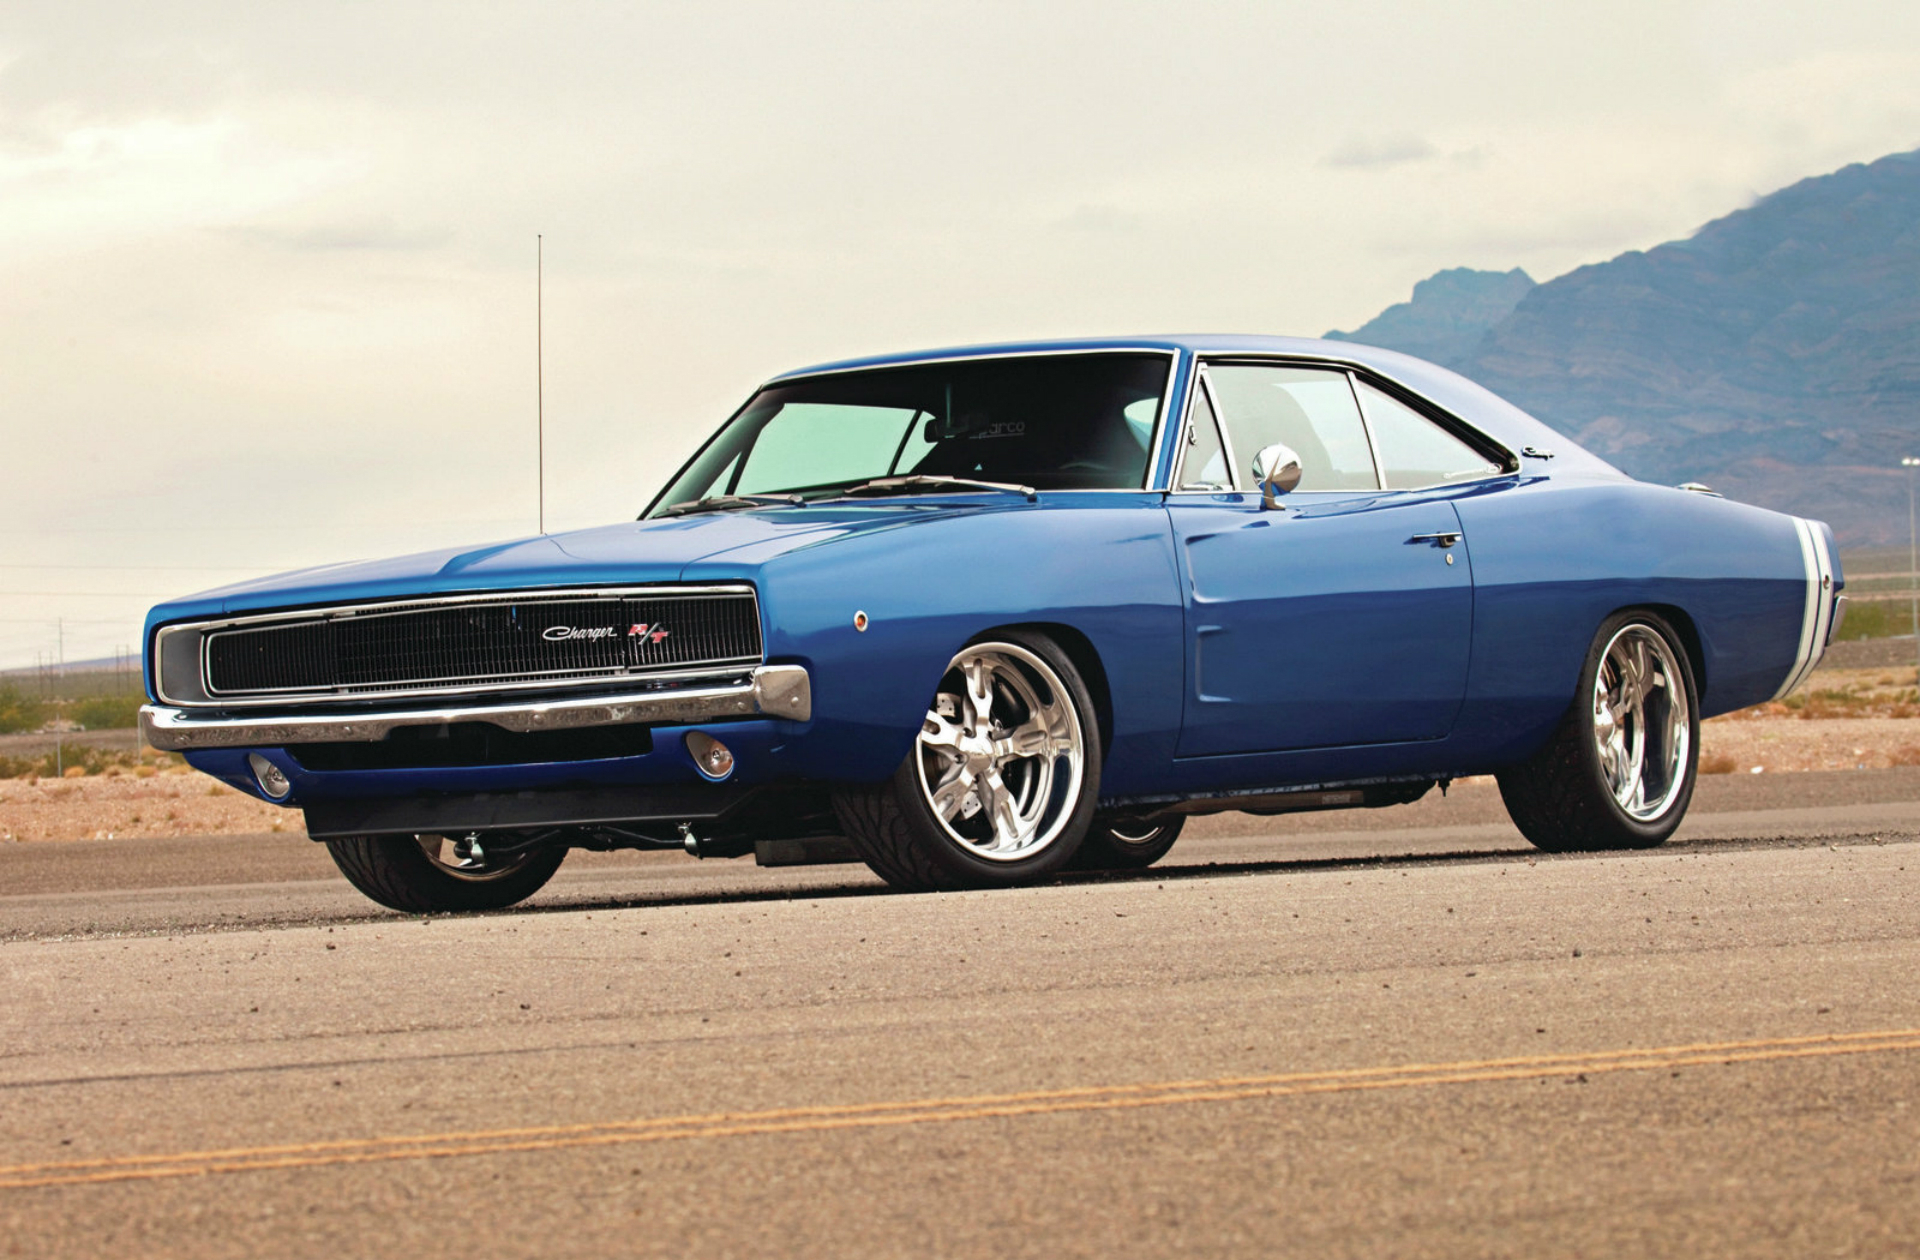 1970 Dodge Charger RT Wallpaper  WallpaperSafari